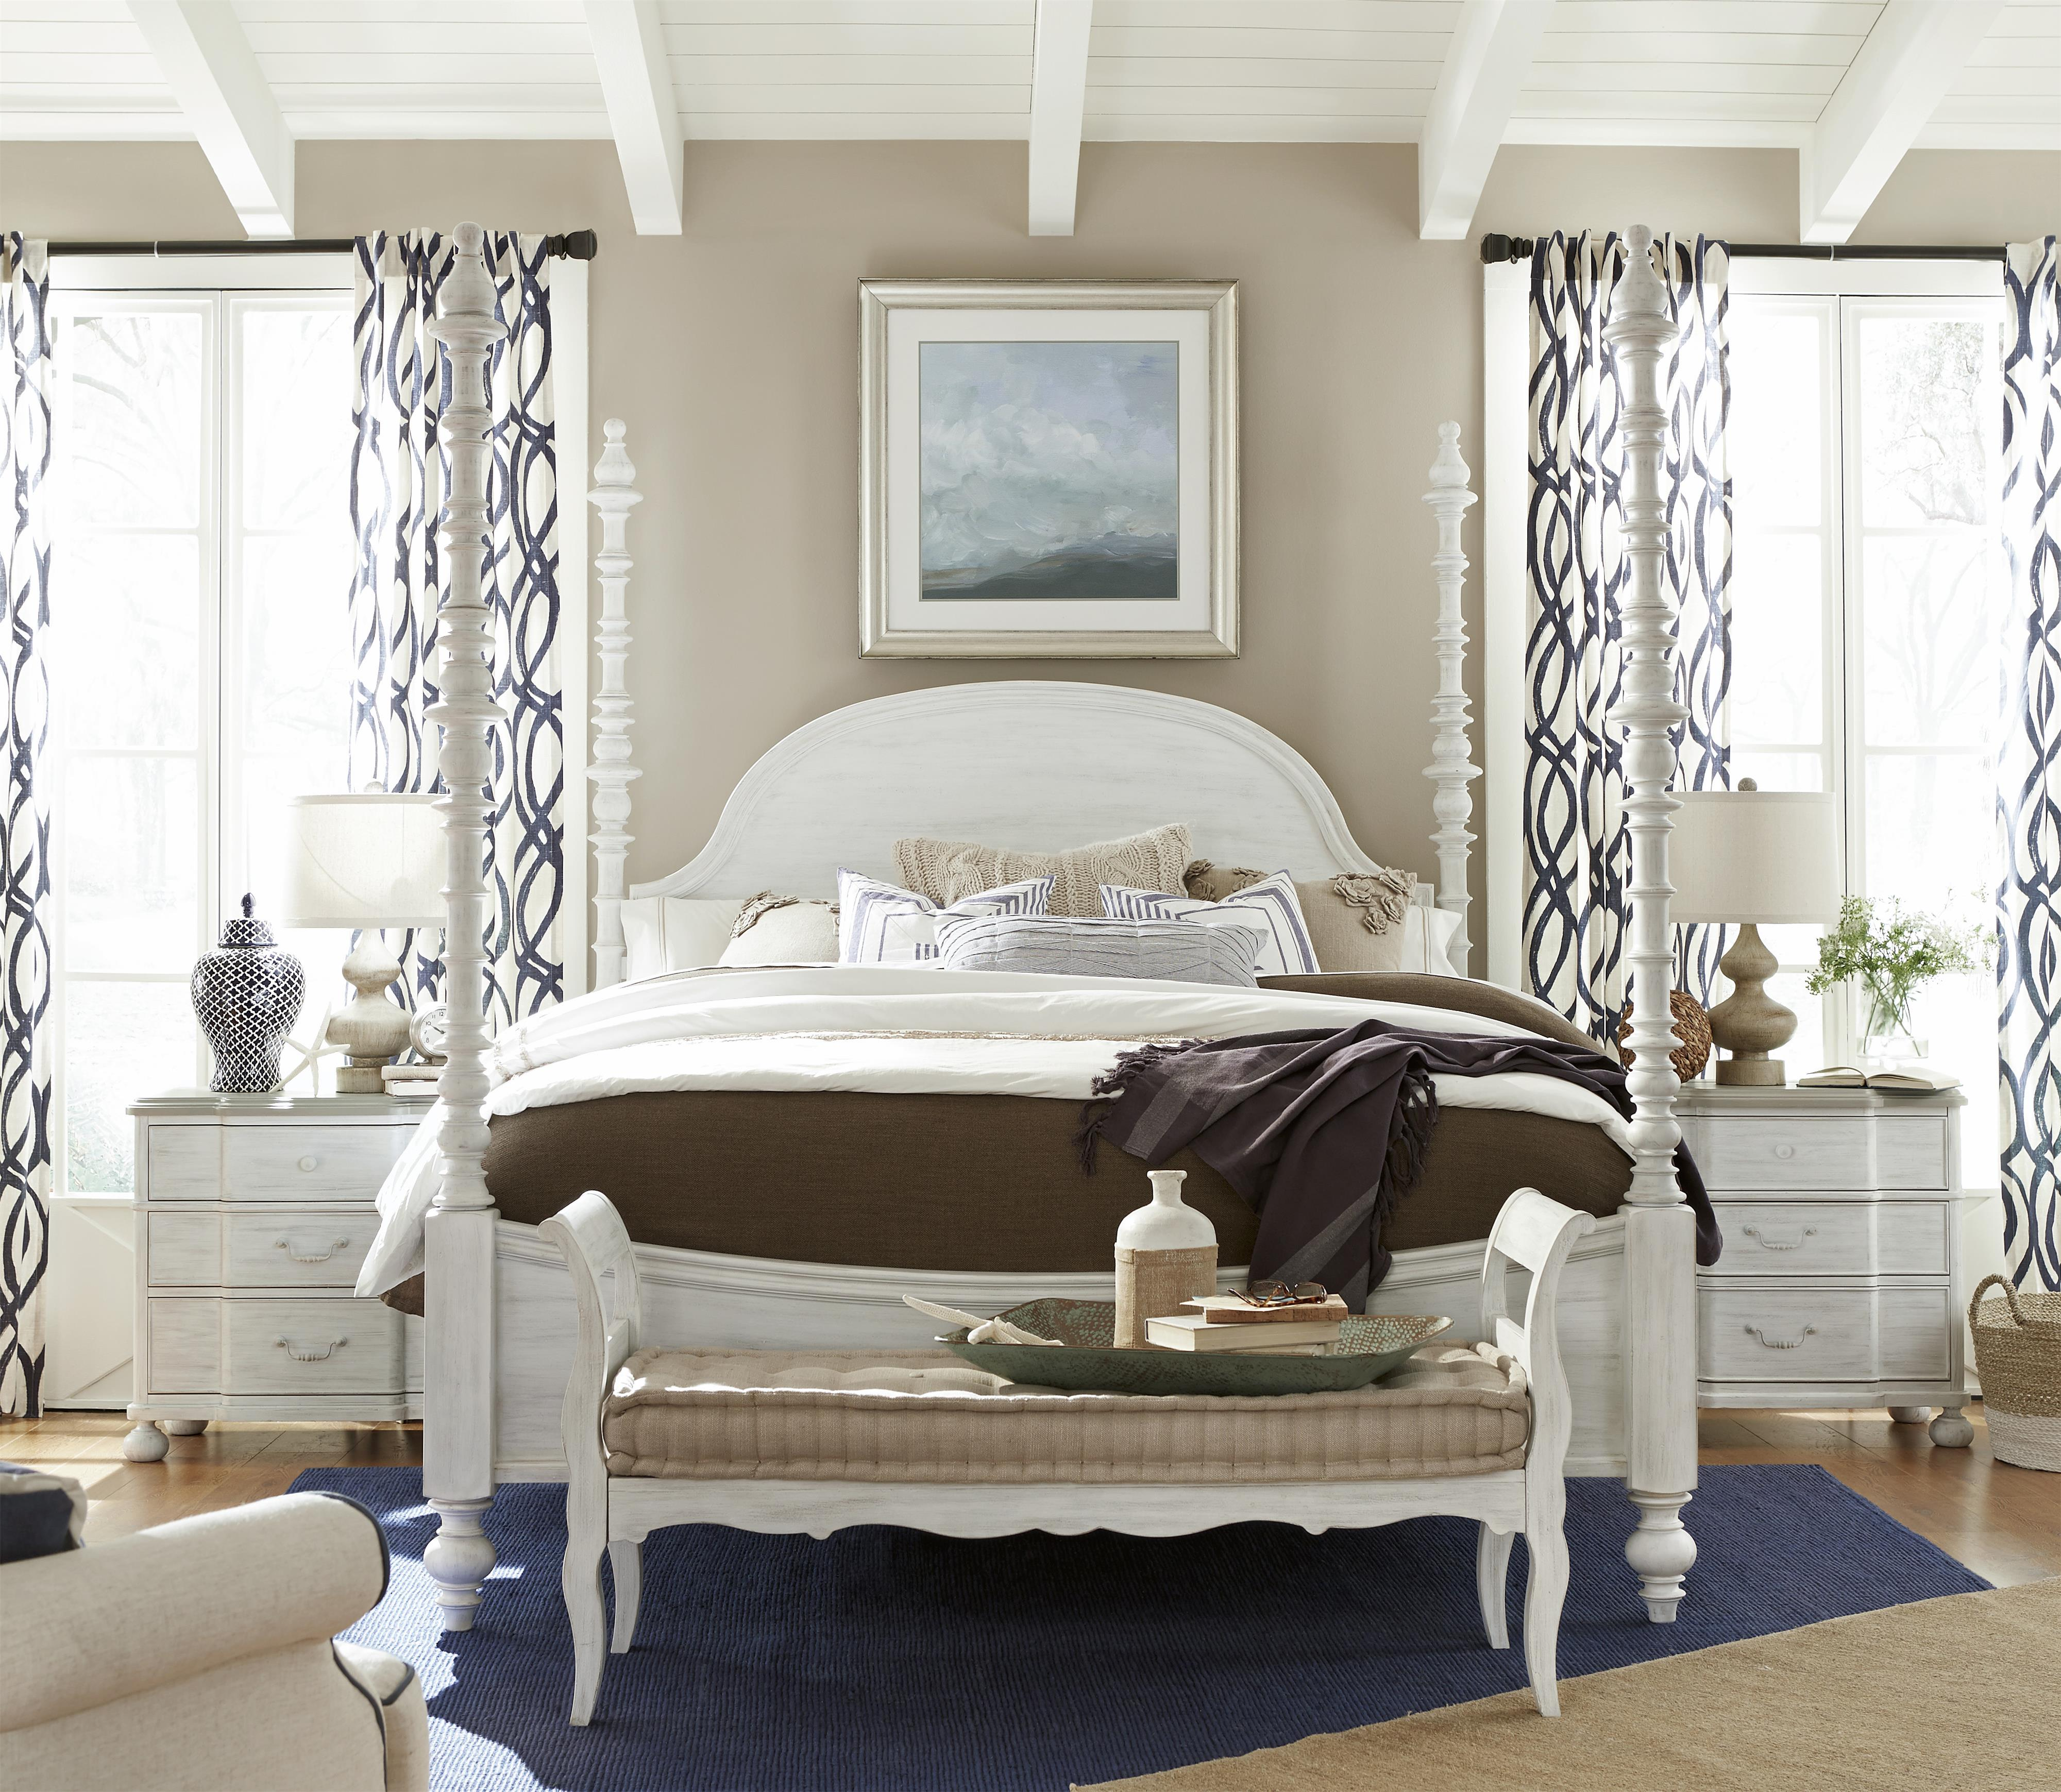 Paula Deen by Universal Dogwood King Bedroom Group - Item Number: 597 K Bedroom Group 1